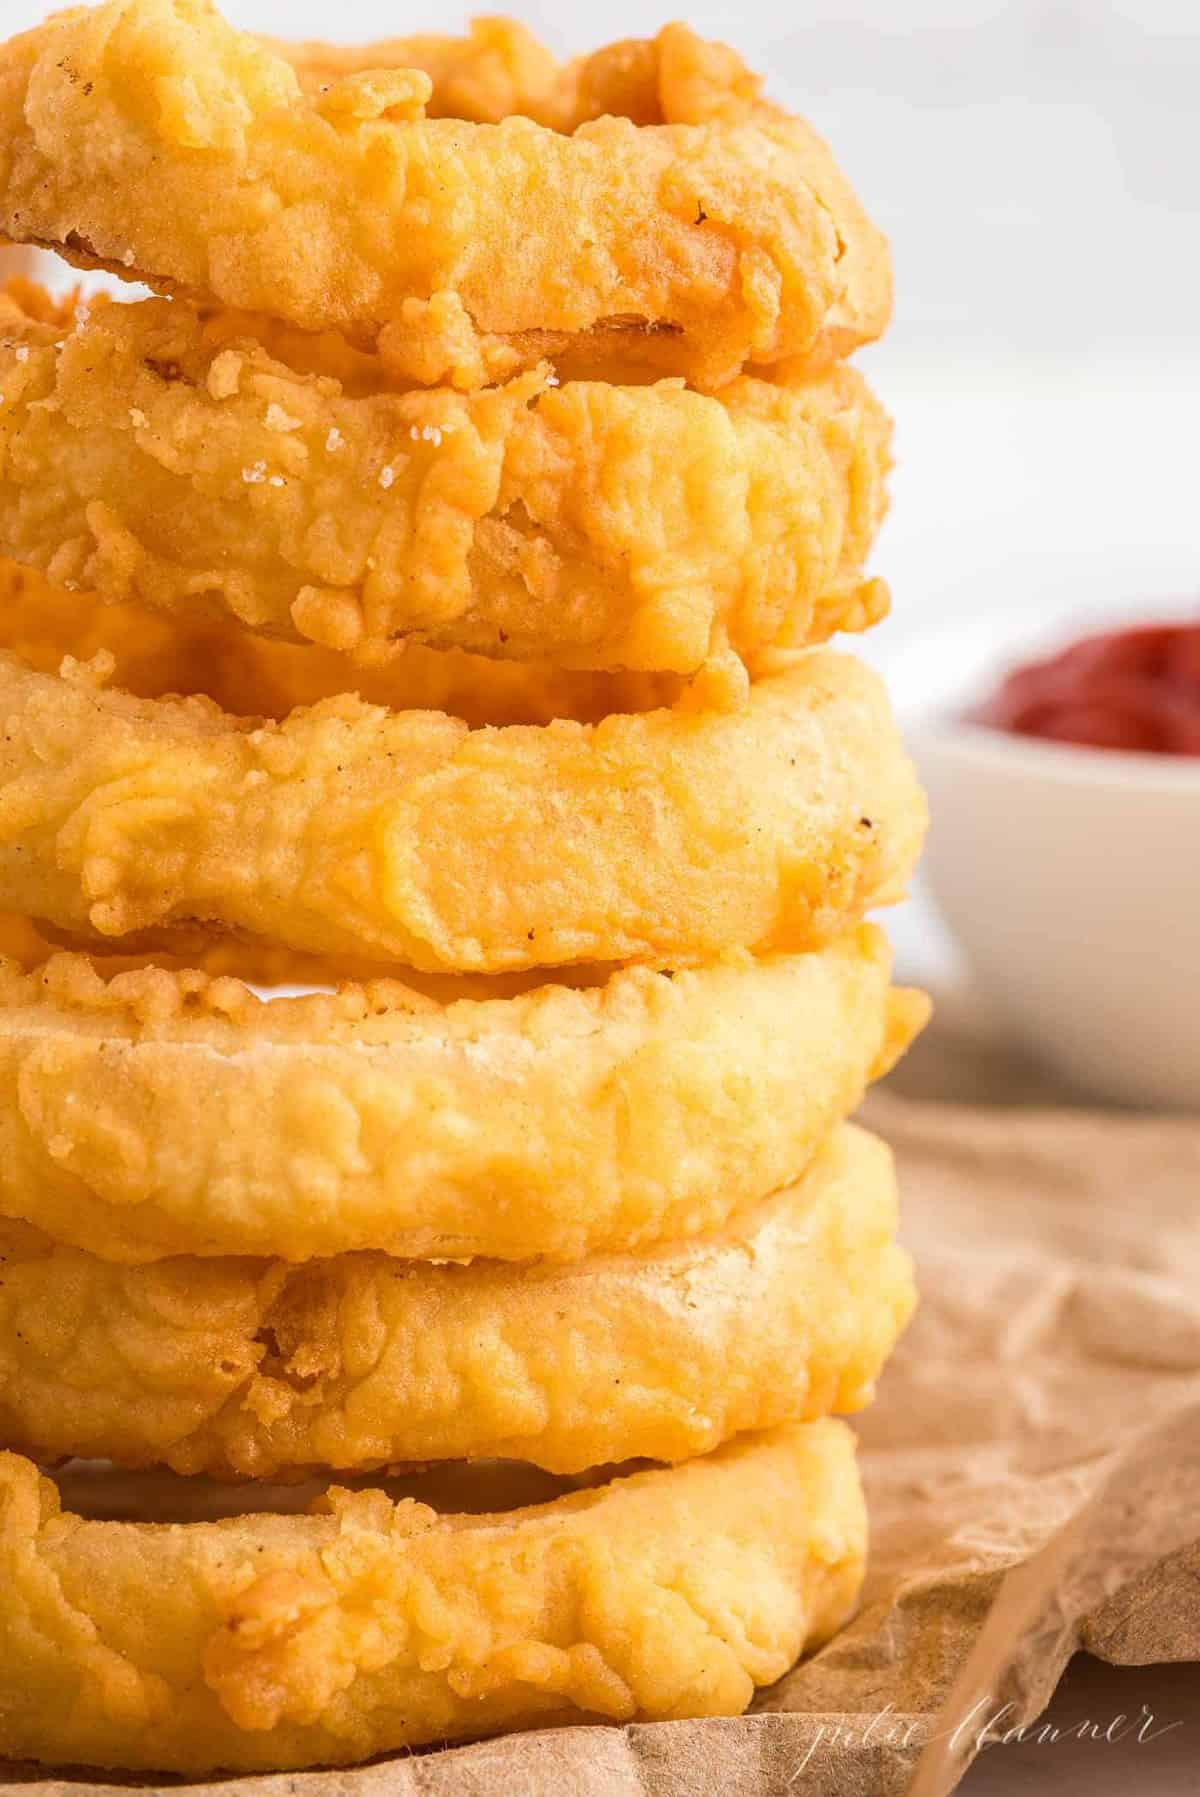 Stack of homemade onion rings on a piece of butcher paper, bowl of ketchup in the background.